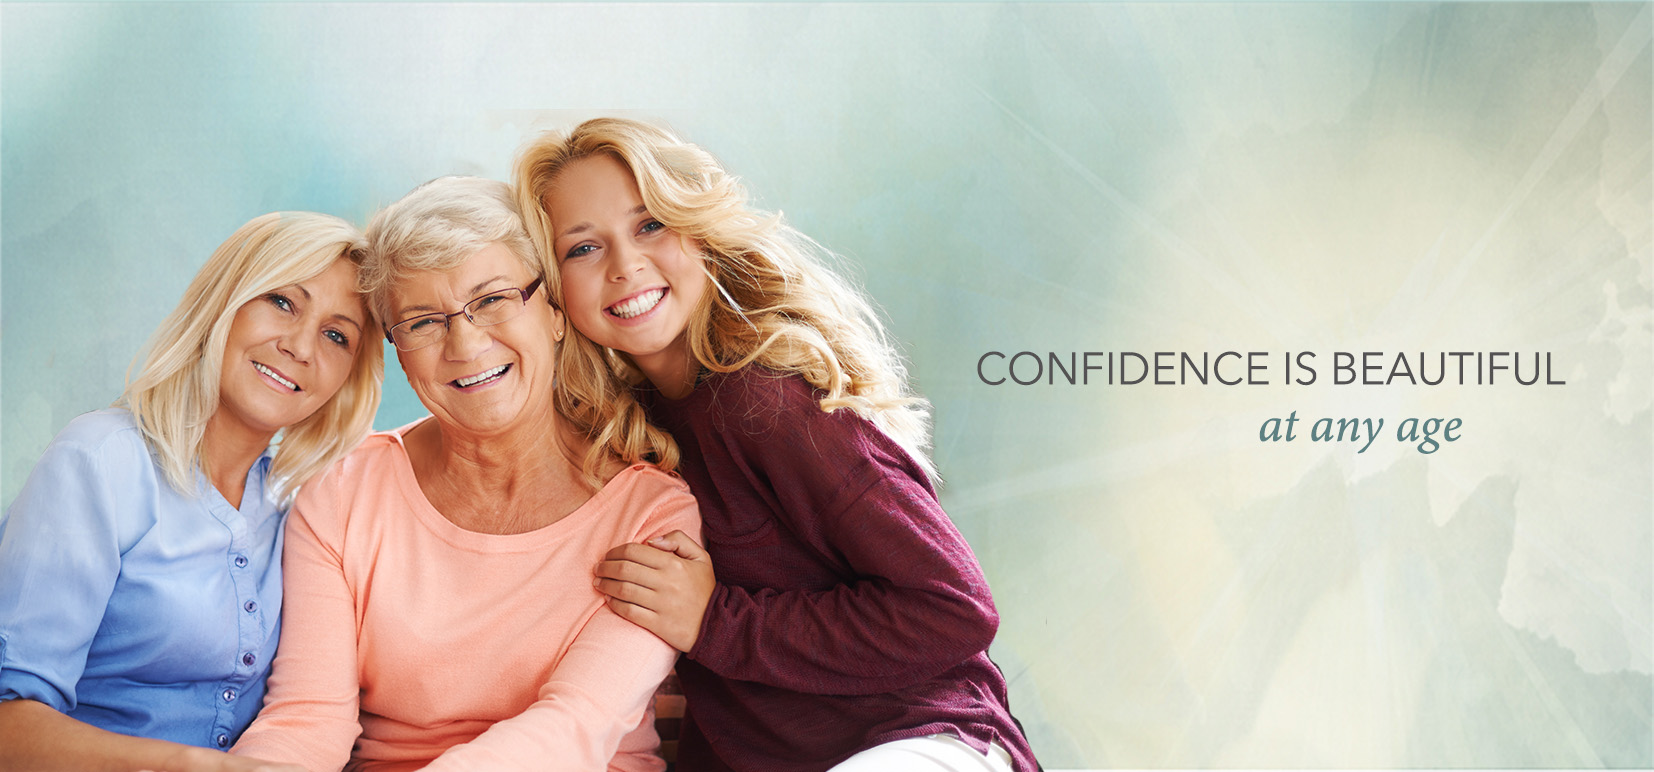 confidence is beautiful at any age